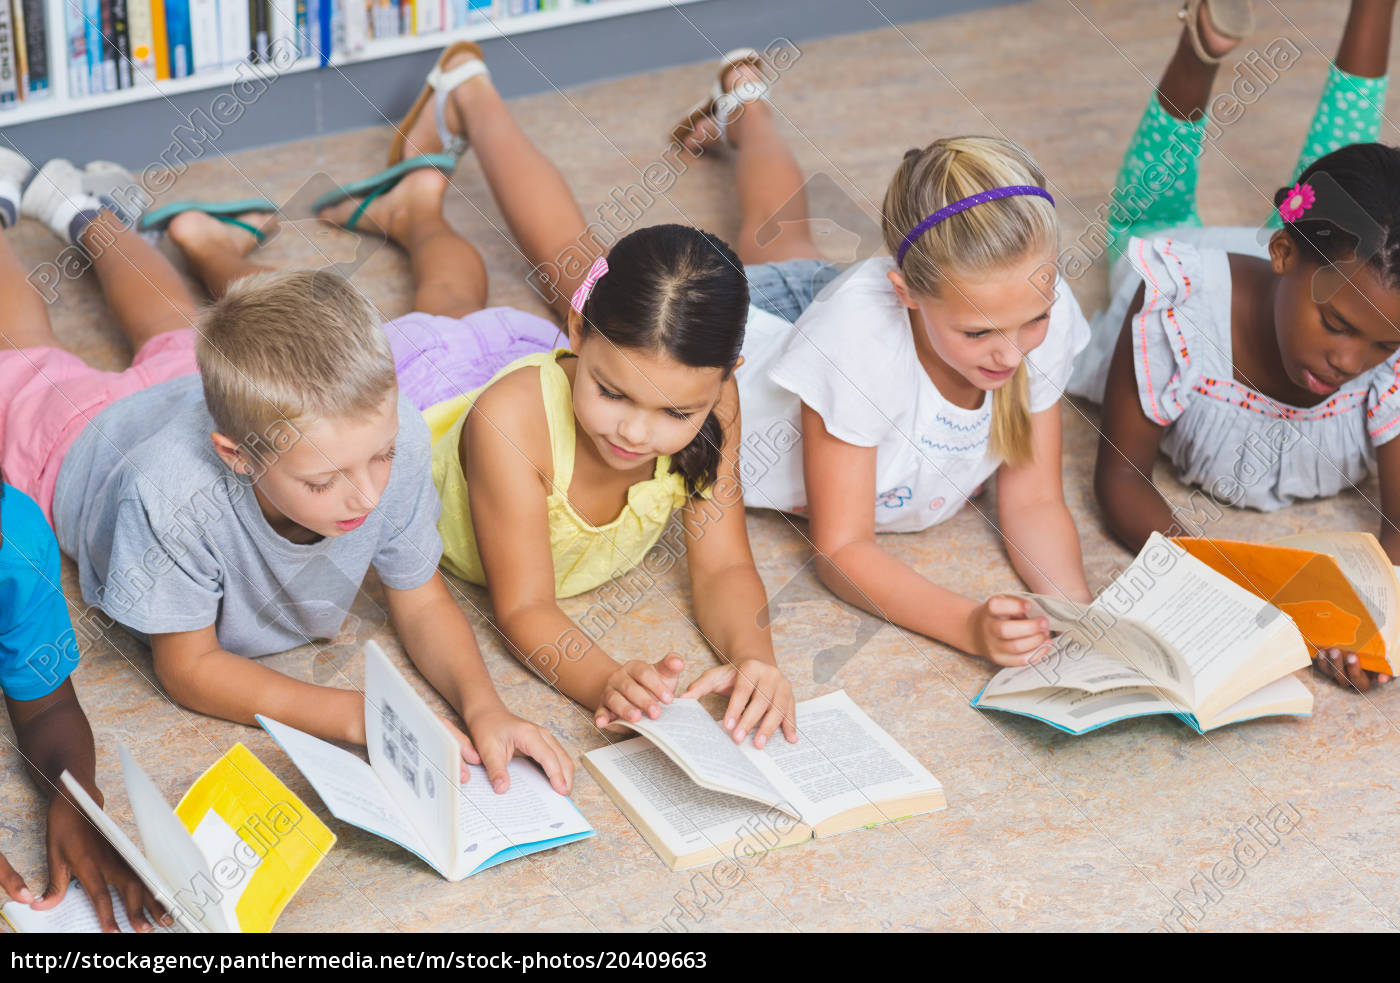 Royalty free image 20409663 - School kids lying on floor reading book in  library